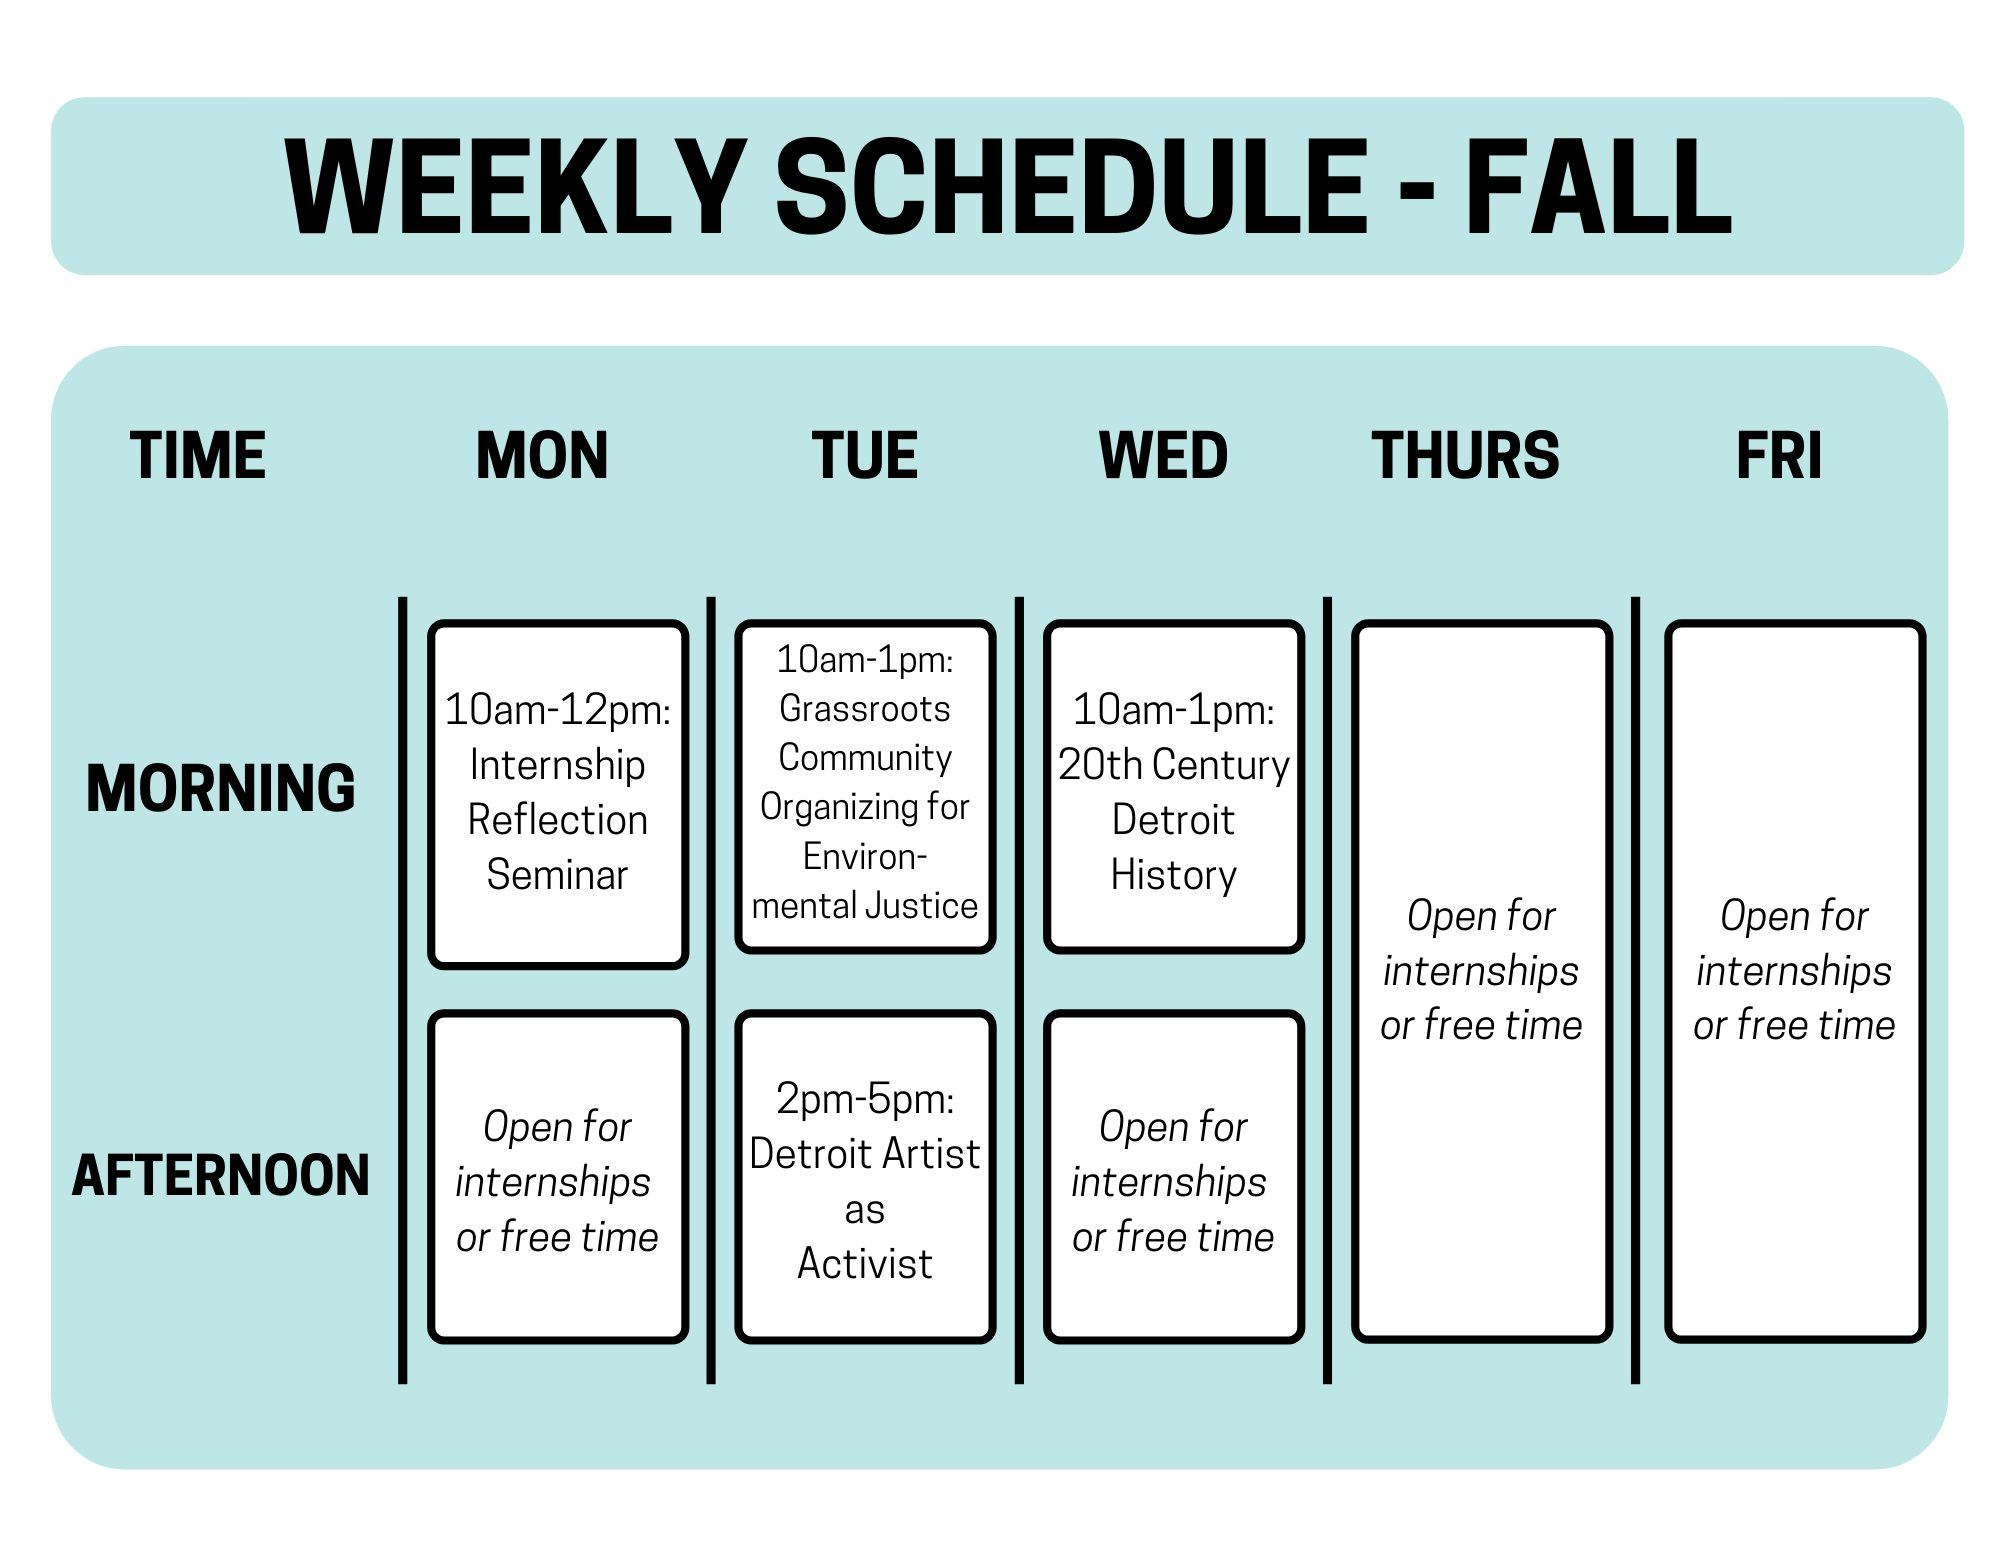 Weekly schedule for fall shows classes on Mondays, Tuesdays, and Wednesdays with time for internships on Monday and Wednesday afternoons, as well as all day Thursday and Friday